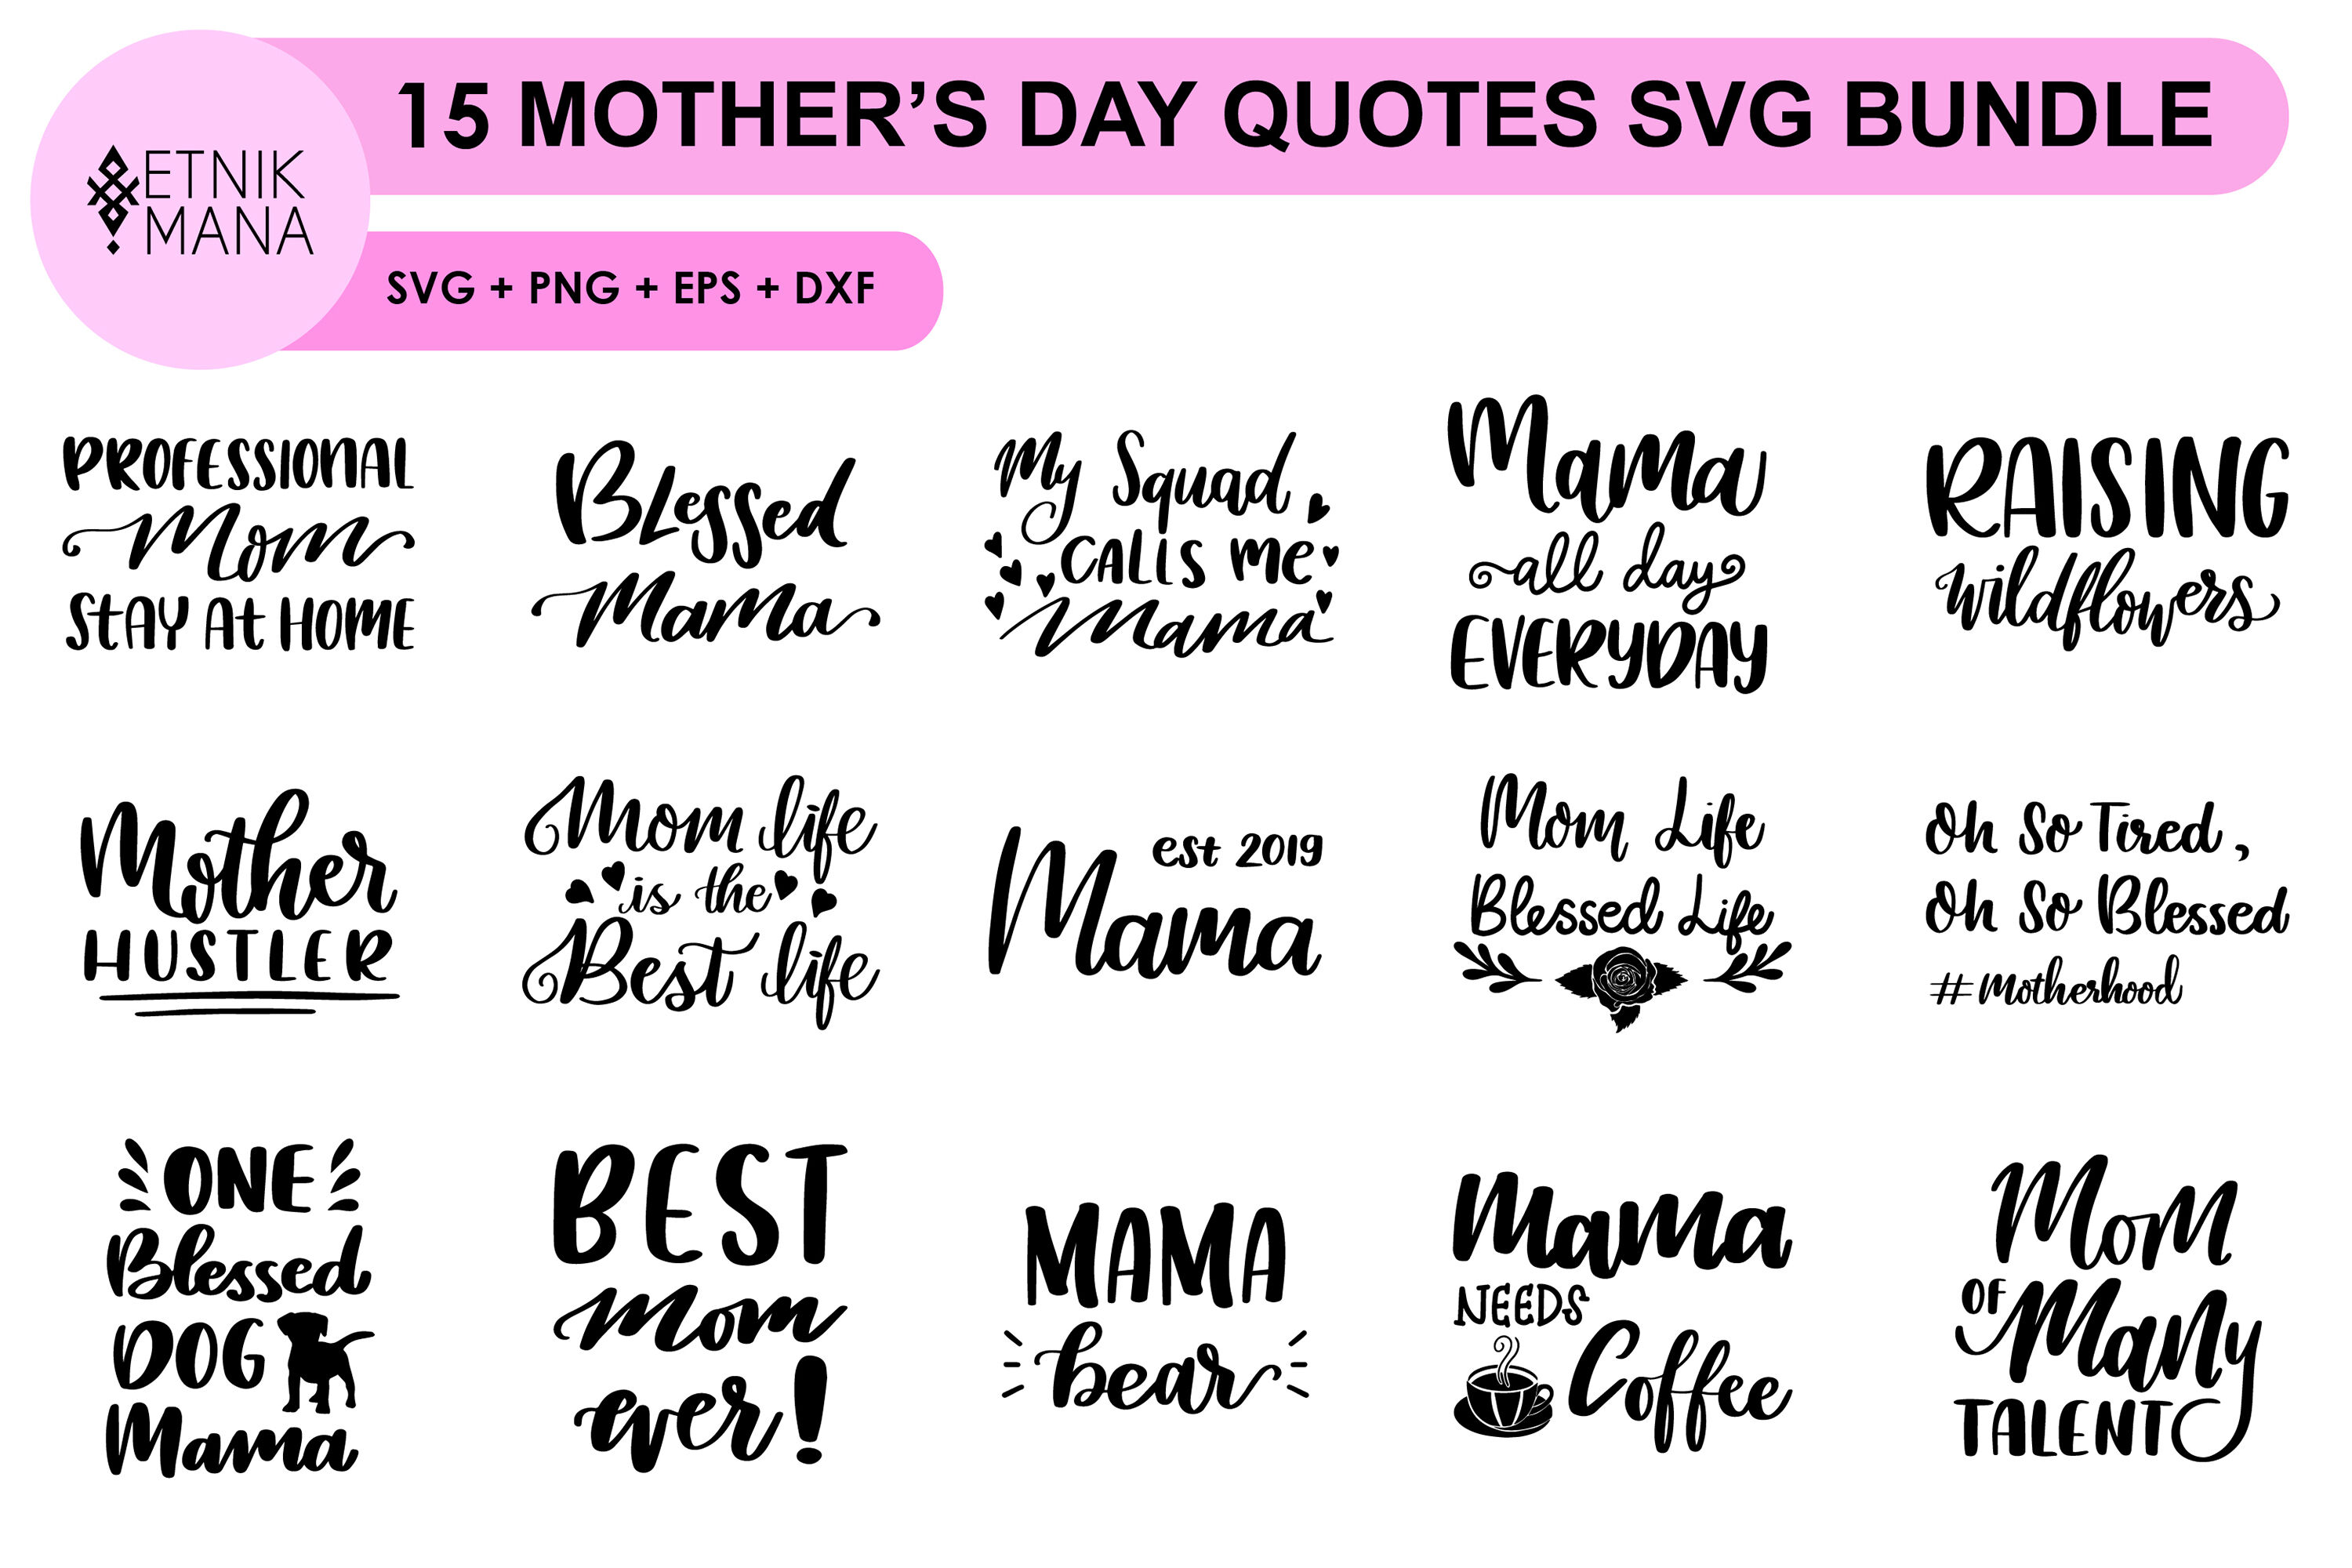 15 Mother S Day Quotes Svg Bundle By Etnik Mana Thehungryjpeg Com